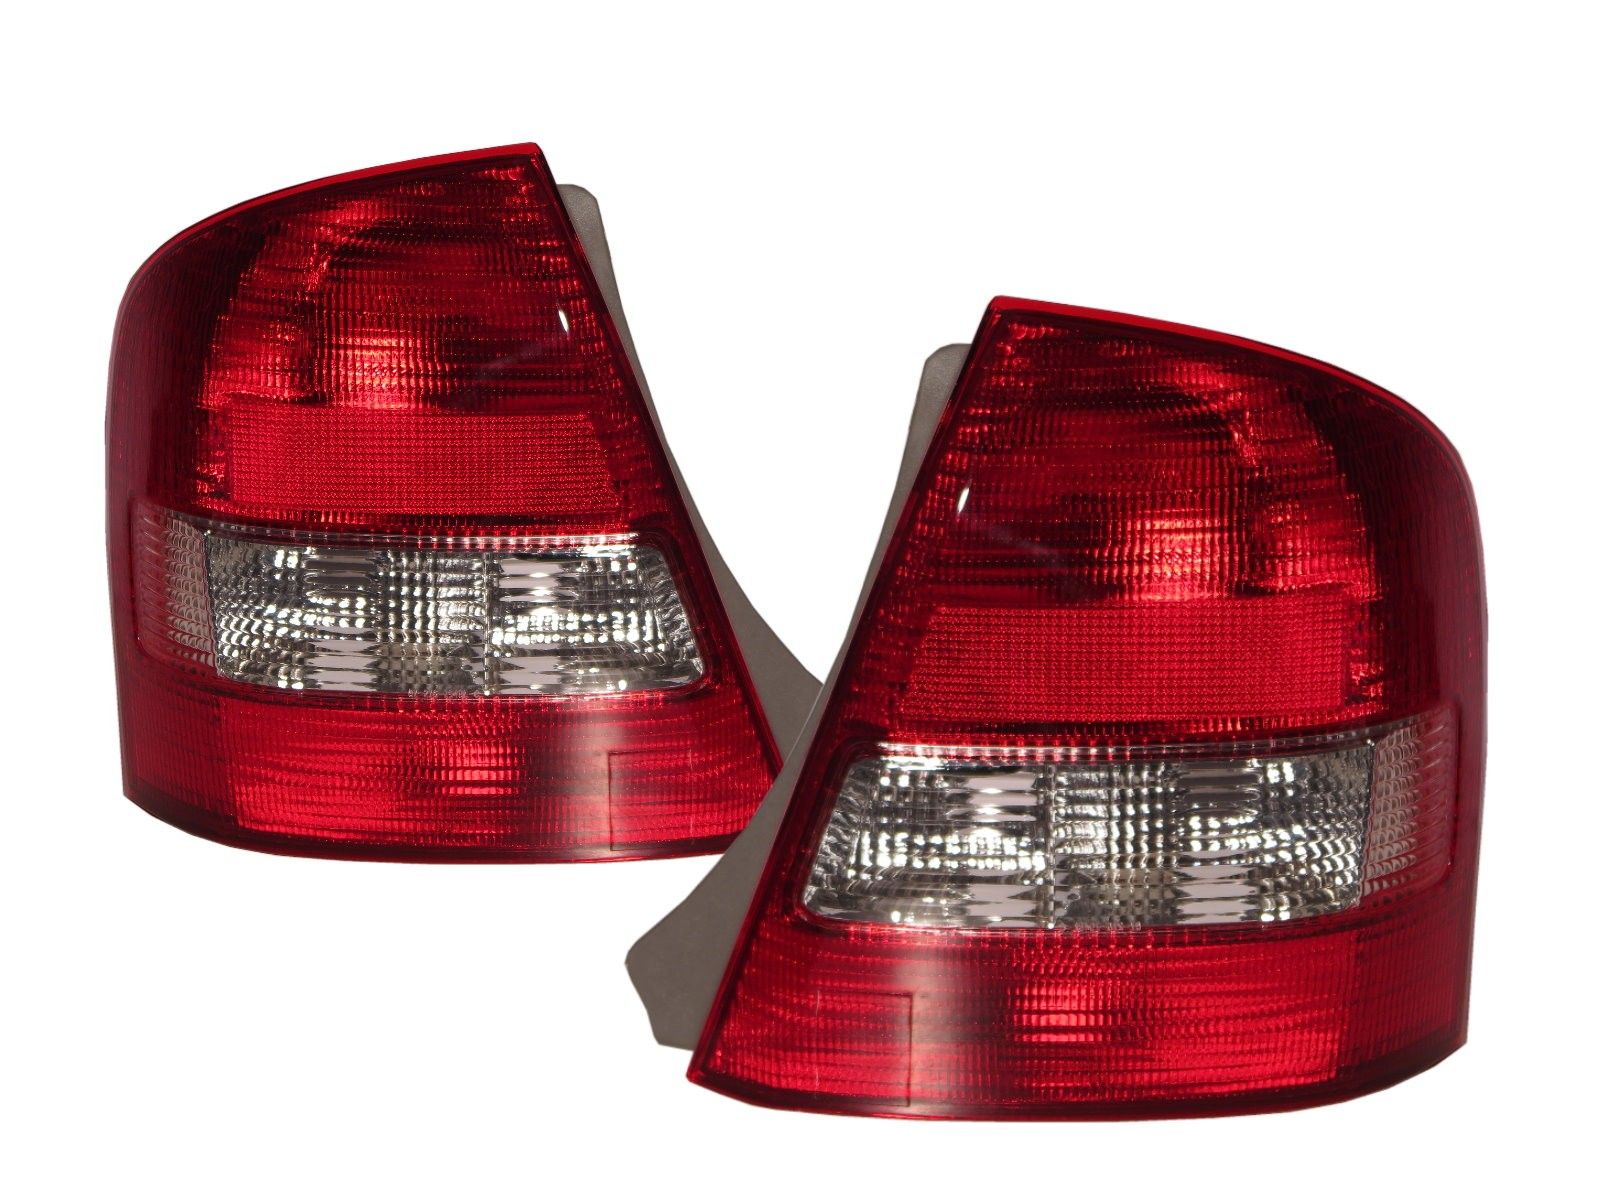 CrazyTheGod Allegro BJ Eighth generation 1998-2004 Sedan 4D Clear Tail Rear Light Red/White V4 for MAZDA